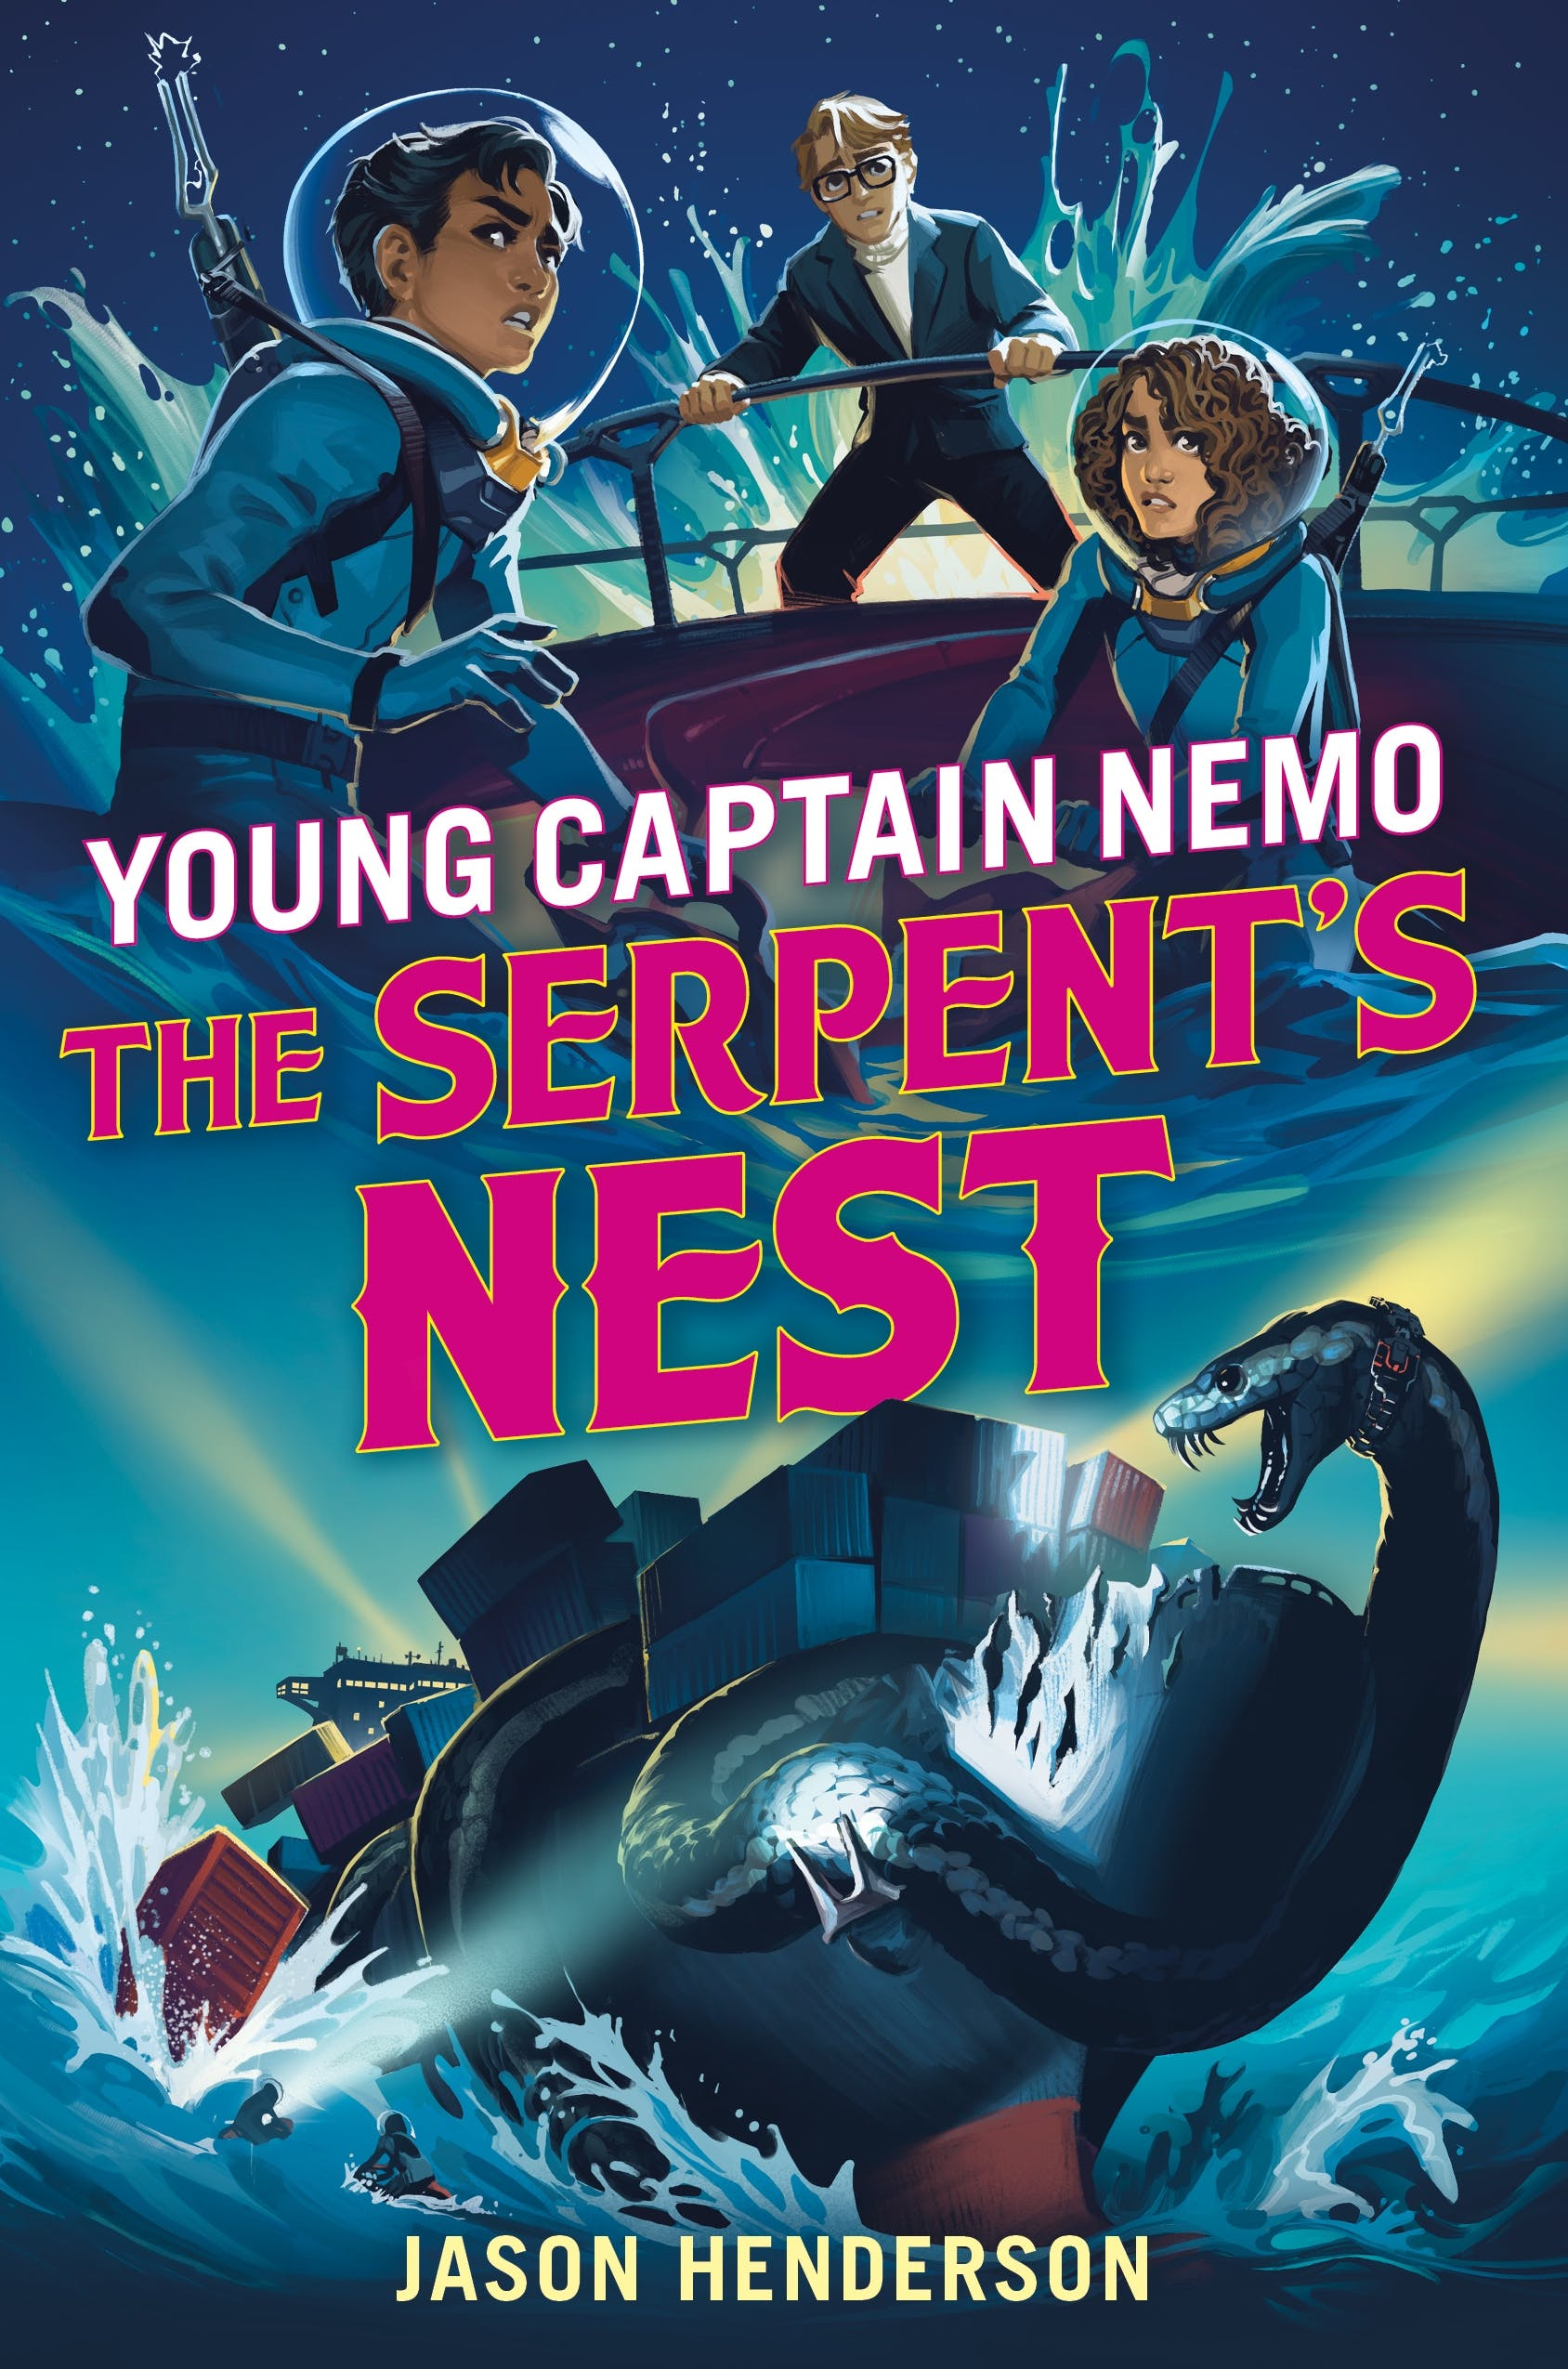 Image of The Serpent's Nest: Young Captain Nemo